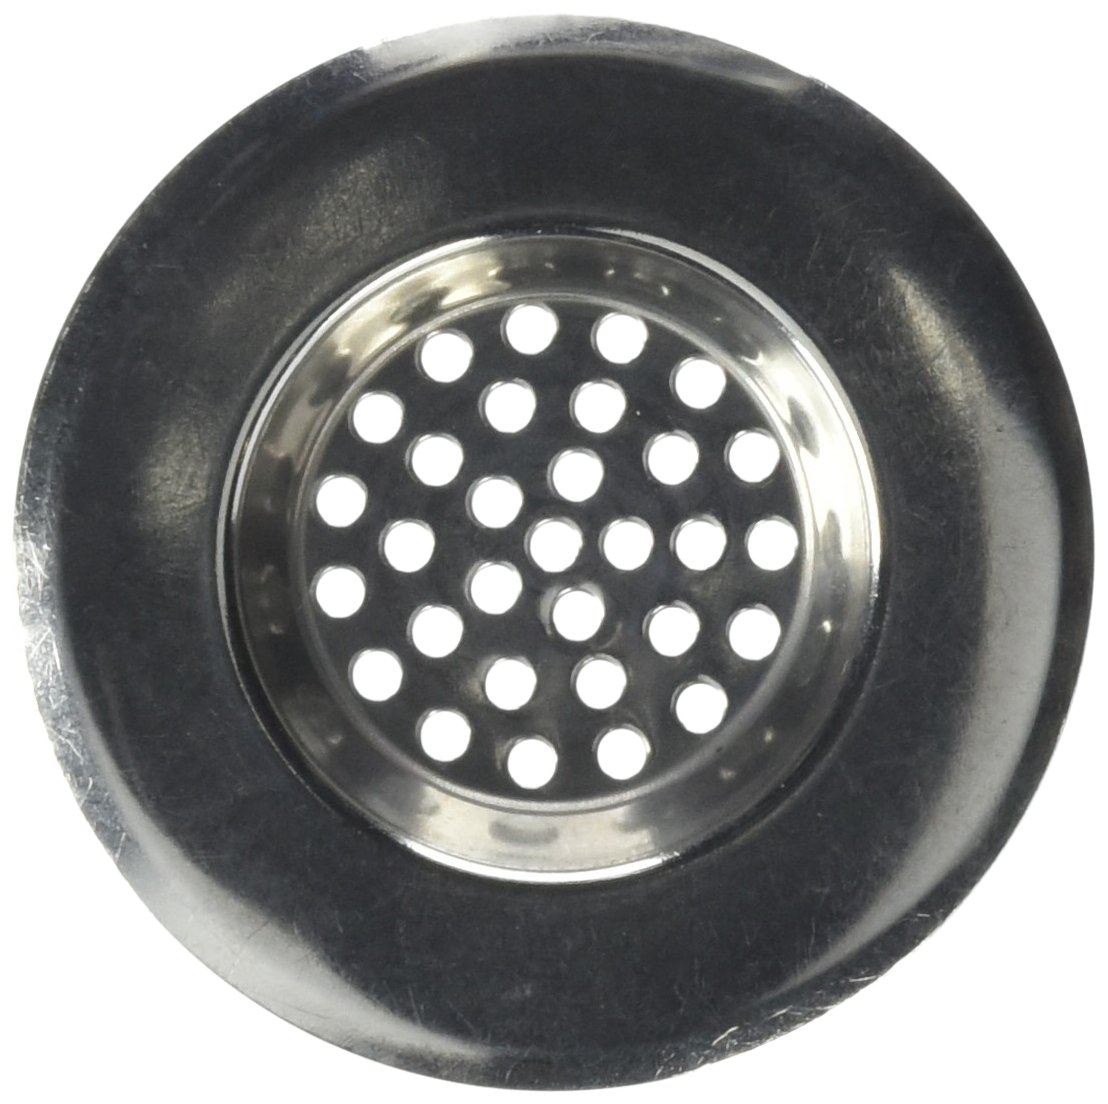 Uxcell Stainless Steel Home Kitchen Water Sink Drainer Strainer with 2.9'' Dia